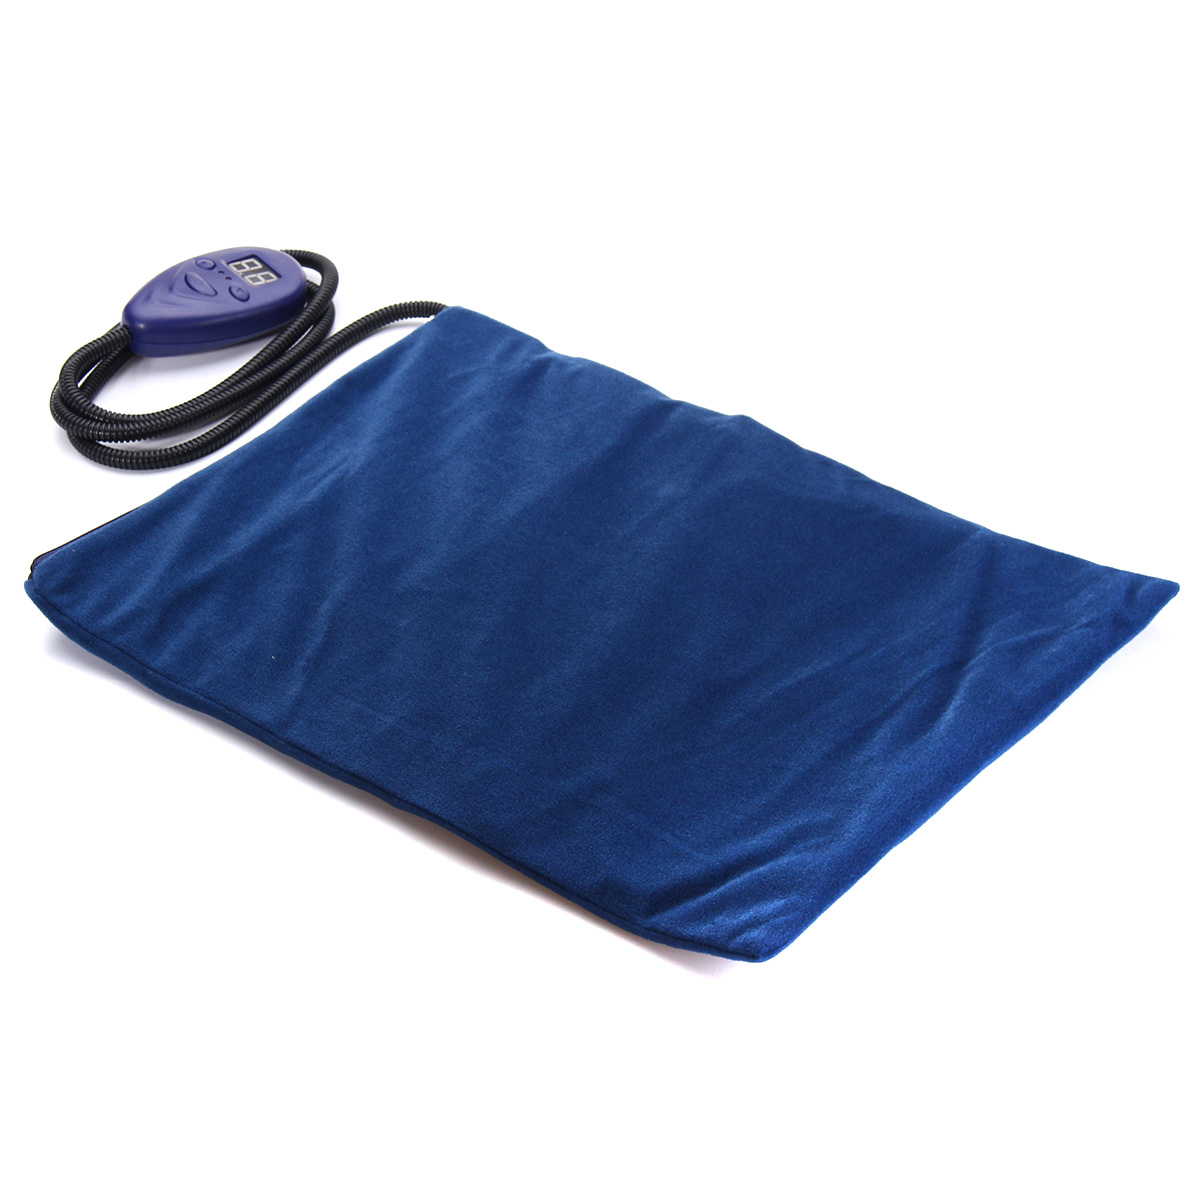 30x40cm Electric Warming Pad Thermal Heated Pet Bed Warmer Dog Cat Waterproof IP67